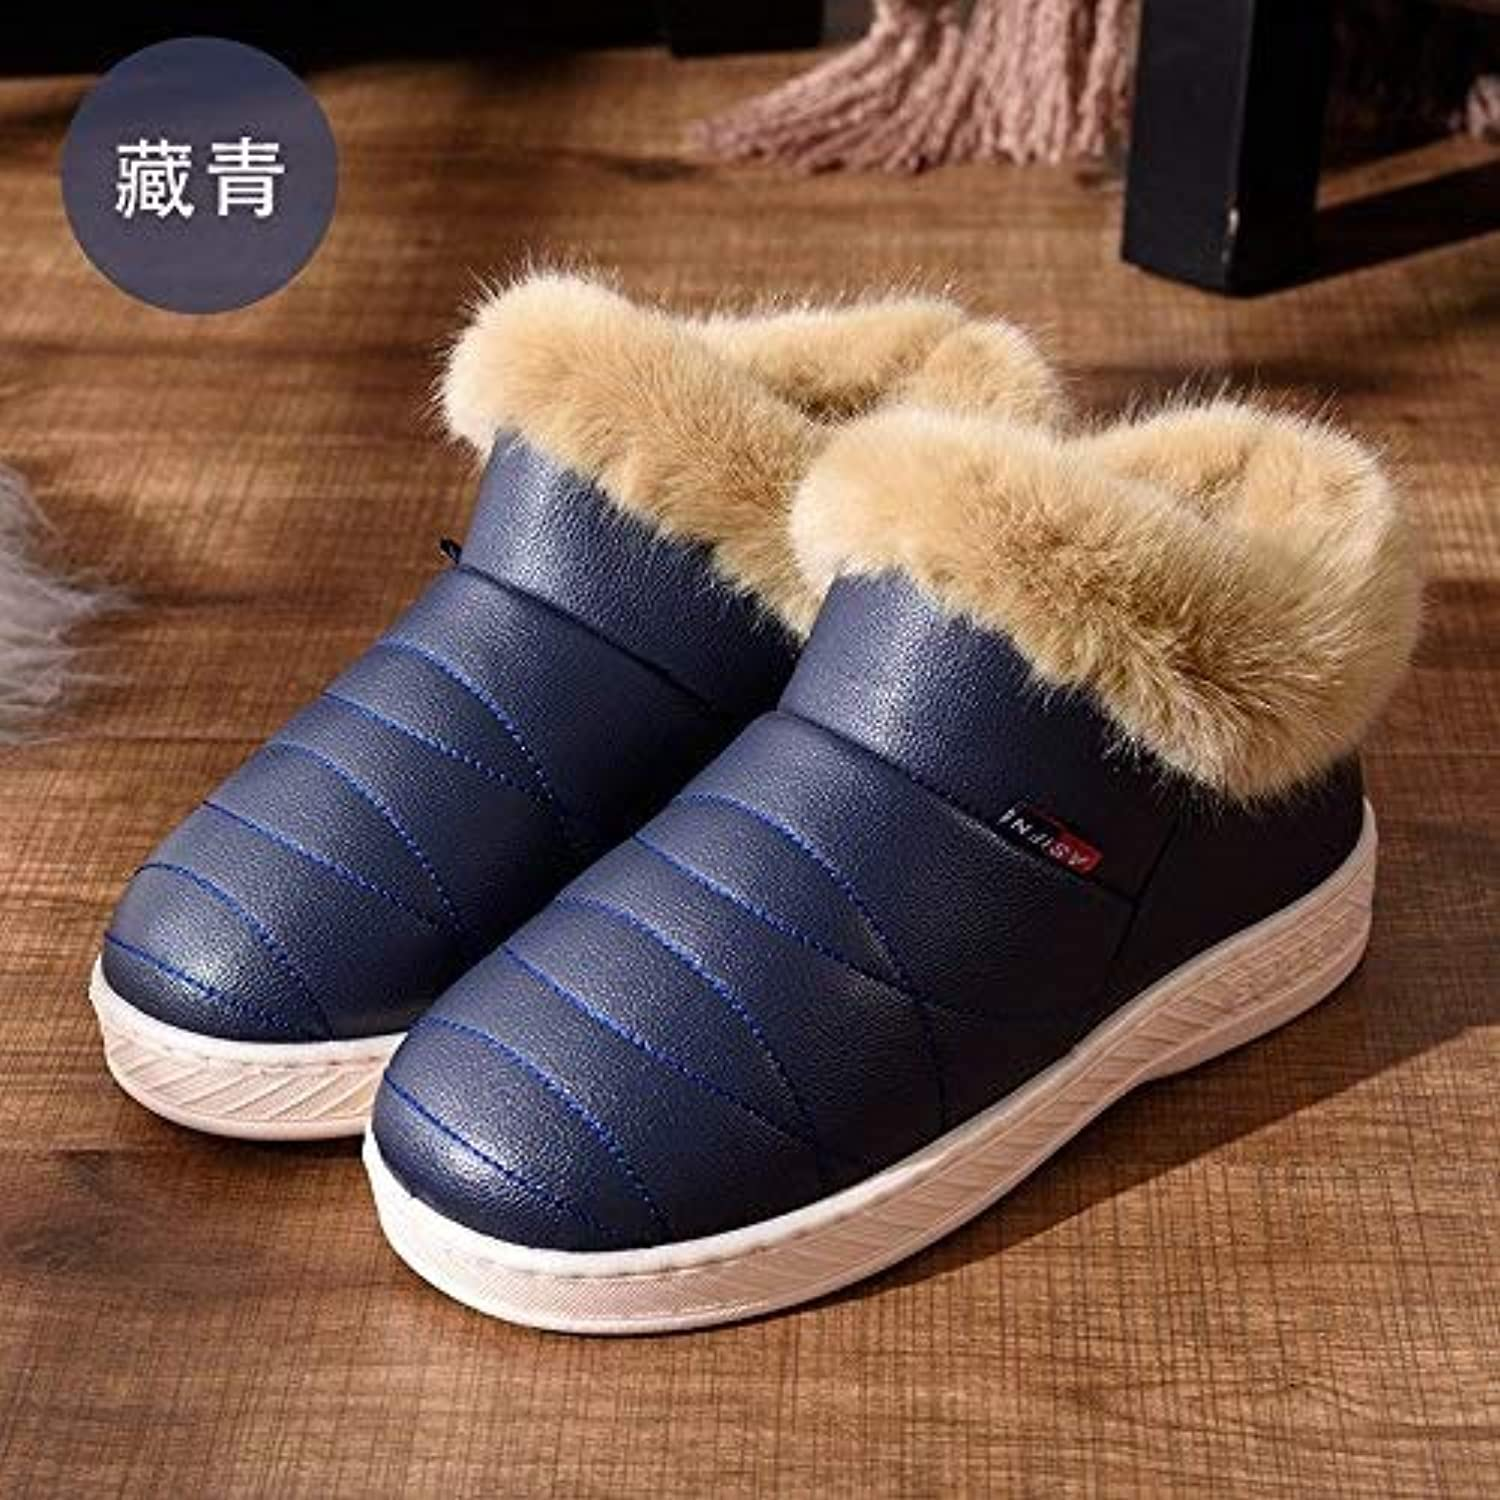 Ladies Anniversary Ring Winter Cotton Slippers Bag with Female Couple Home Home Waterproof Non-Slip Warm Thick Men and Women Months Cotton shoes, (color   High Help, Size   46-47)